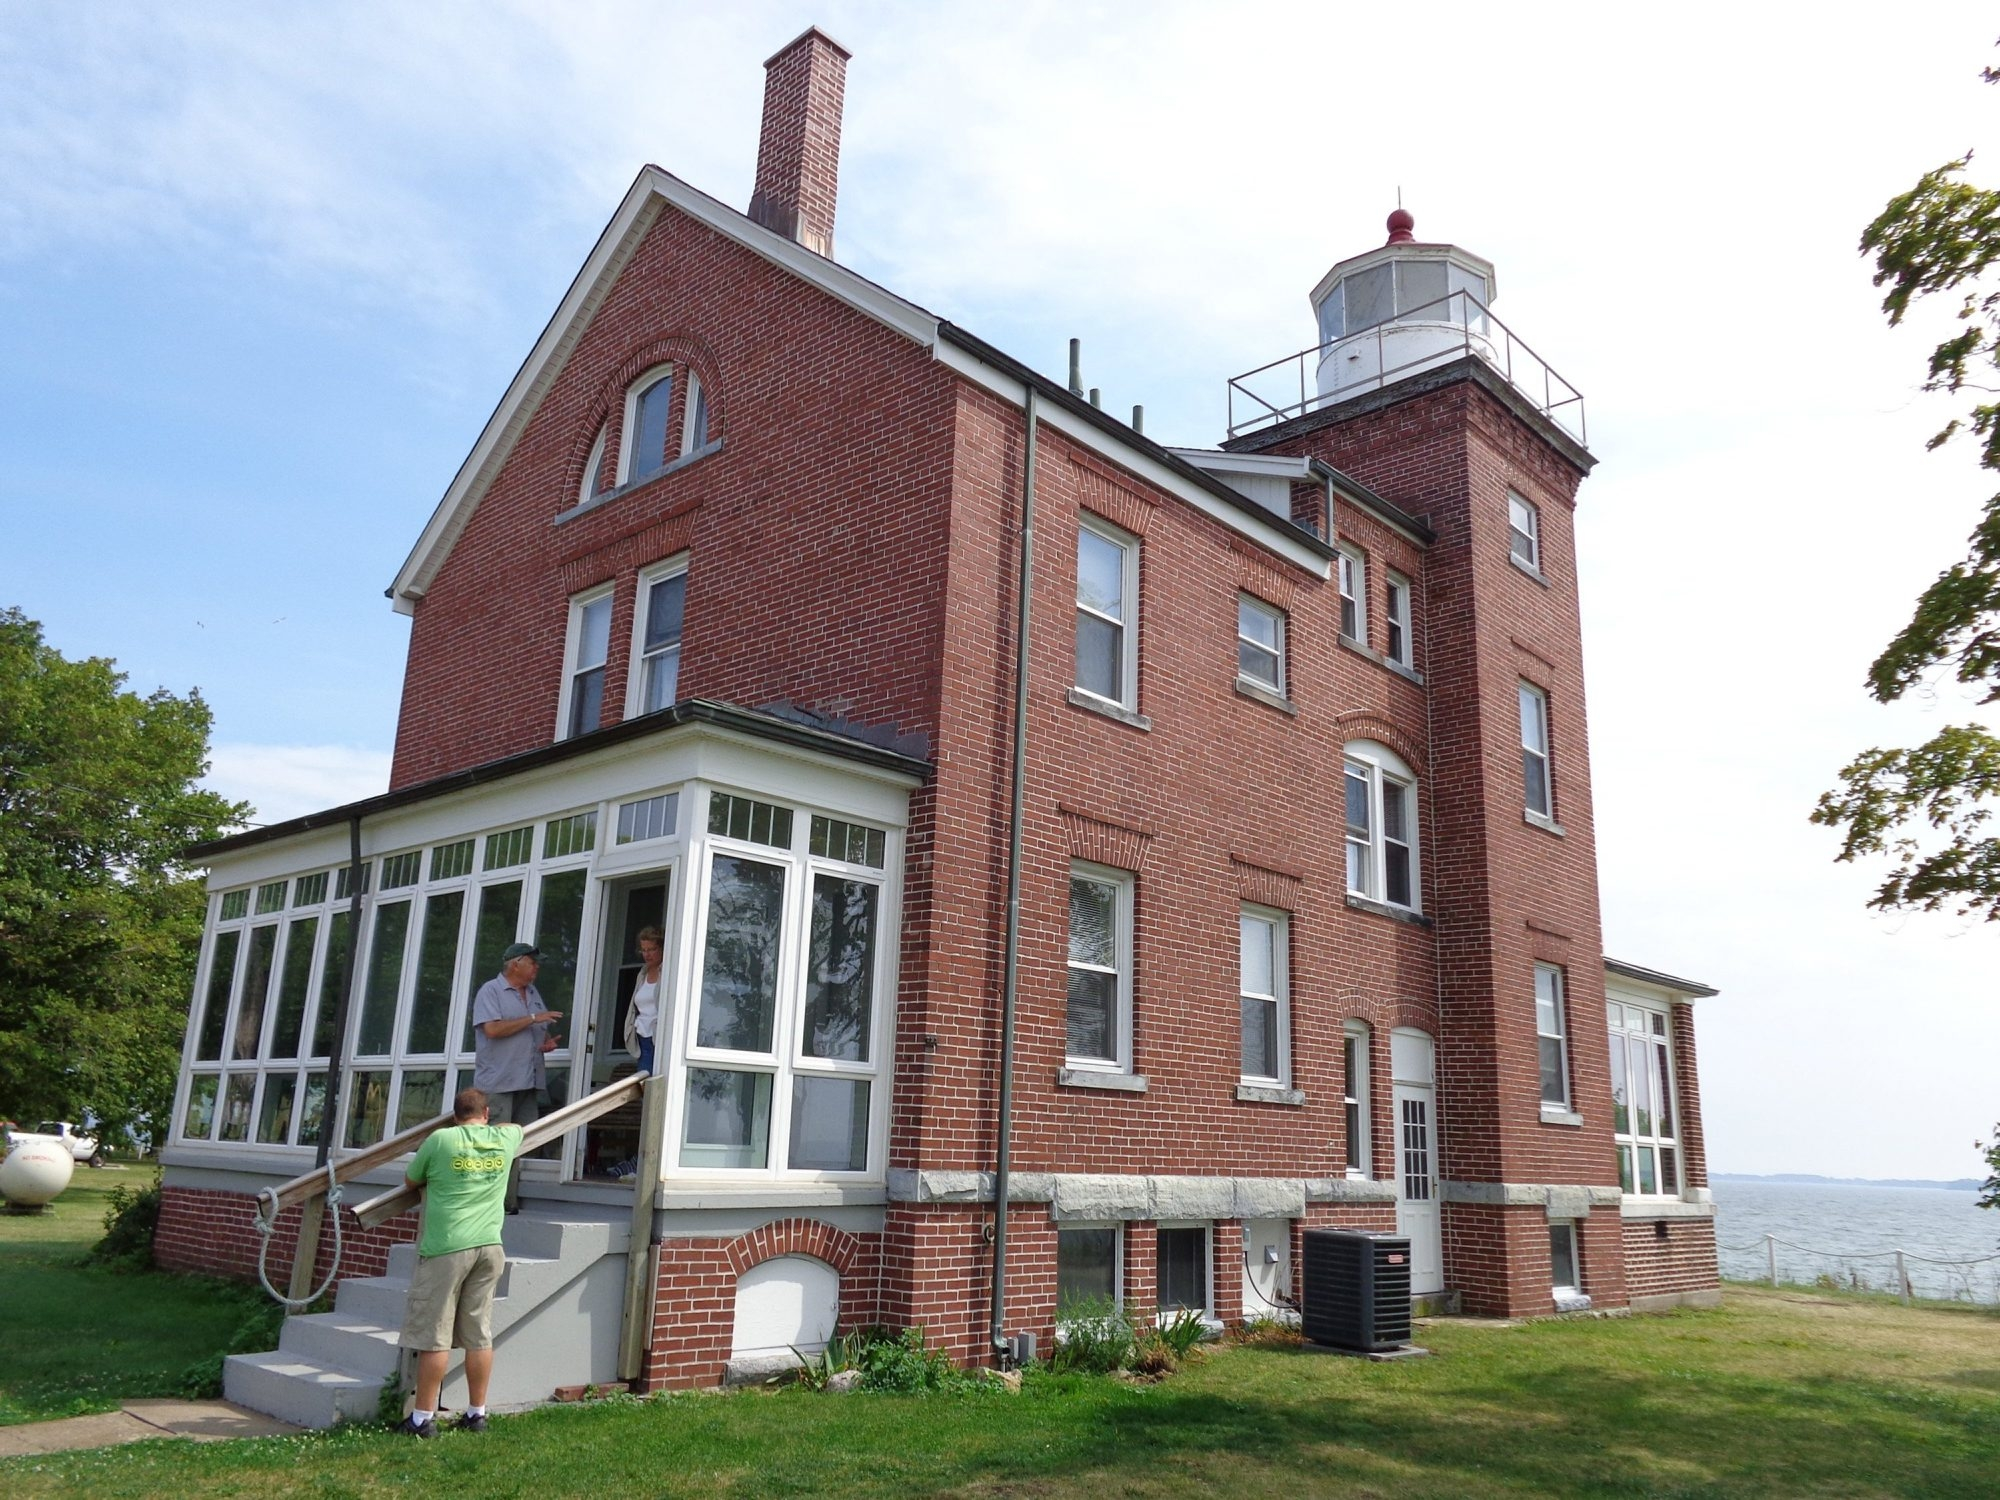 The South Bass Light Station overlooks western Lake Erie on South Bass Island in Put-in-Bay, Ohio. It operated from 1897 to 1962.